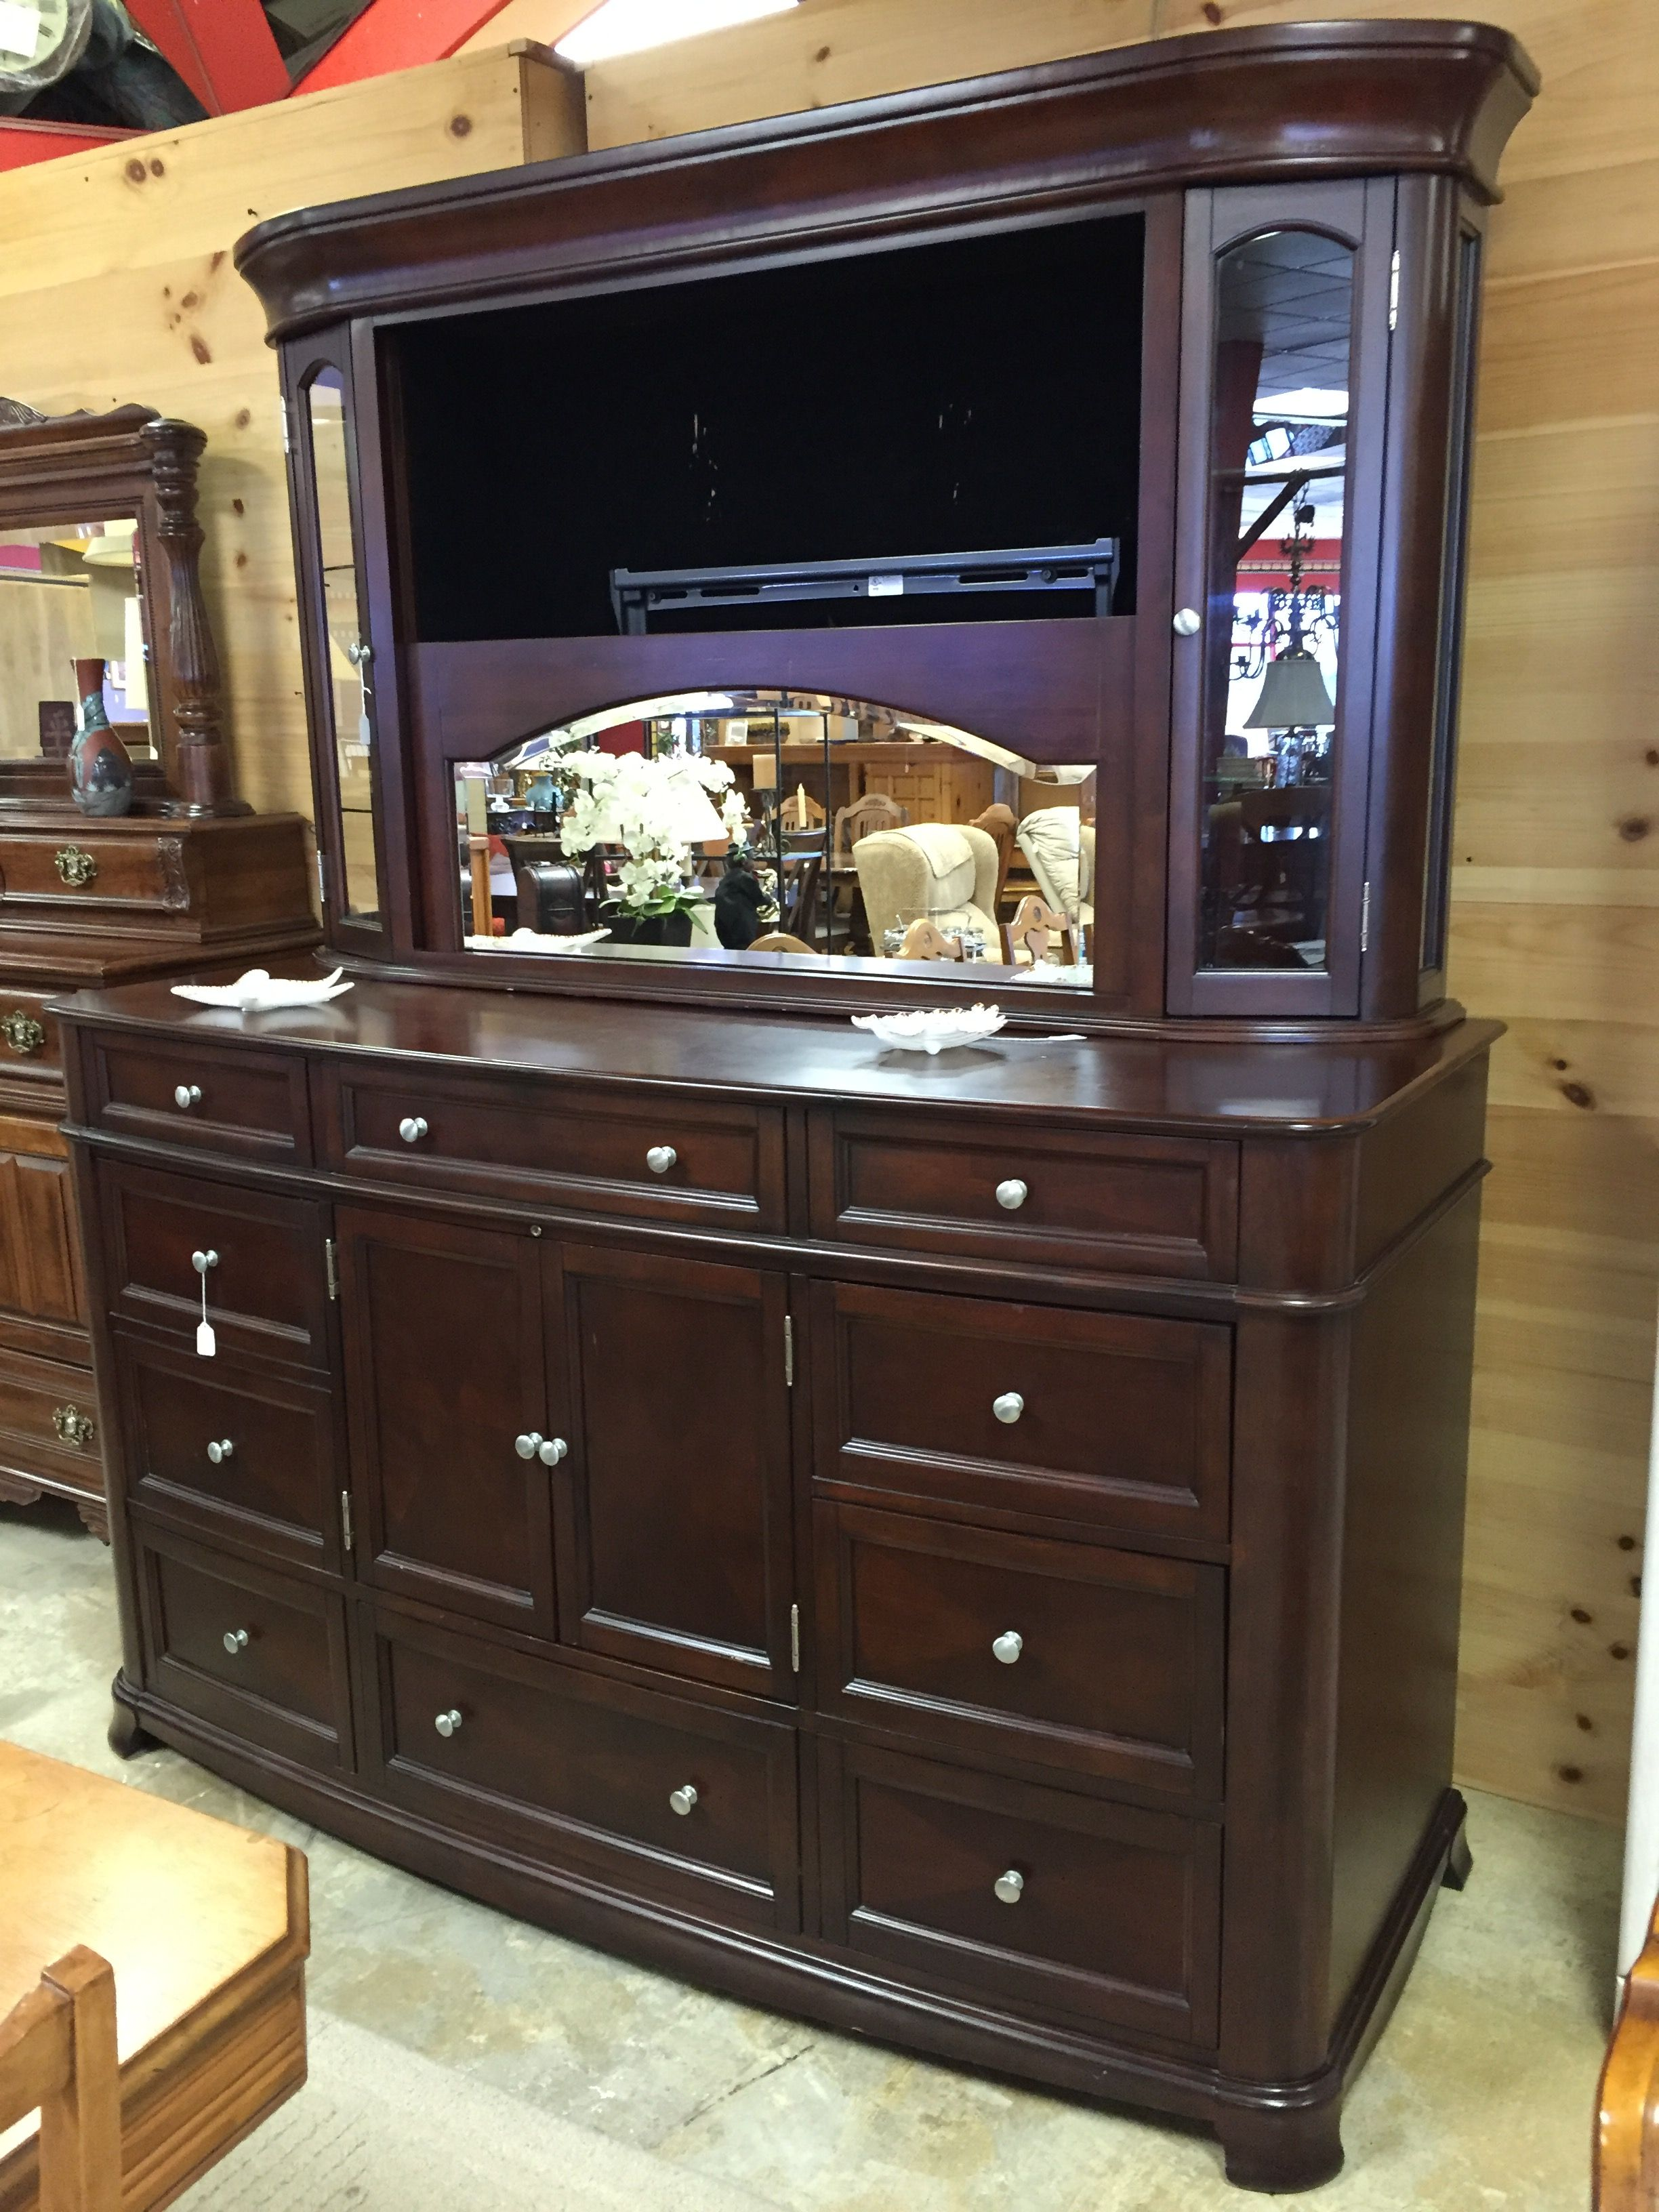 Beautiful Large Dresser With Hidden Entertainment Center Behind